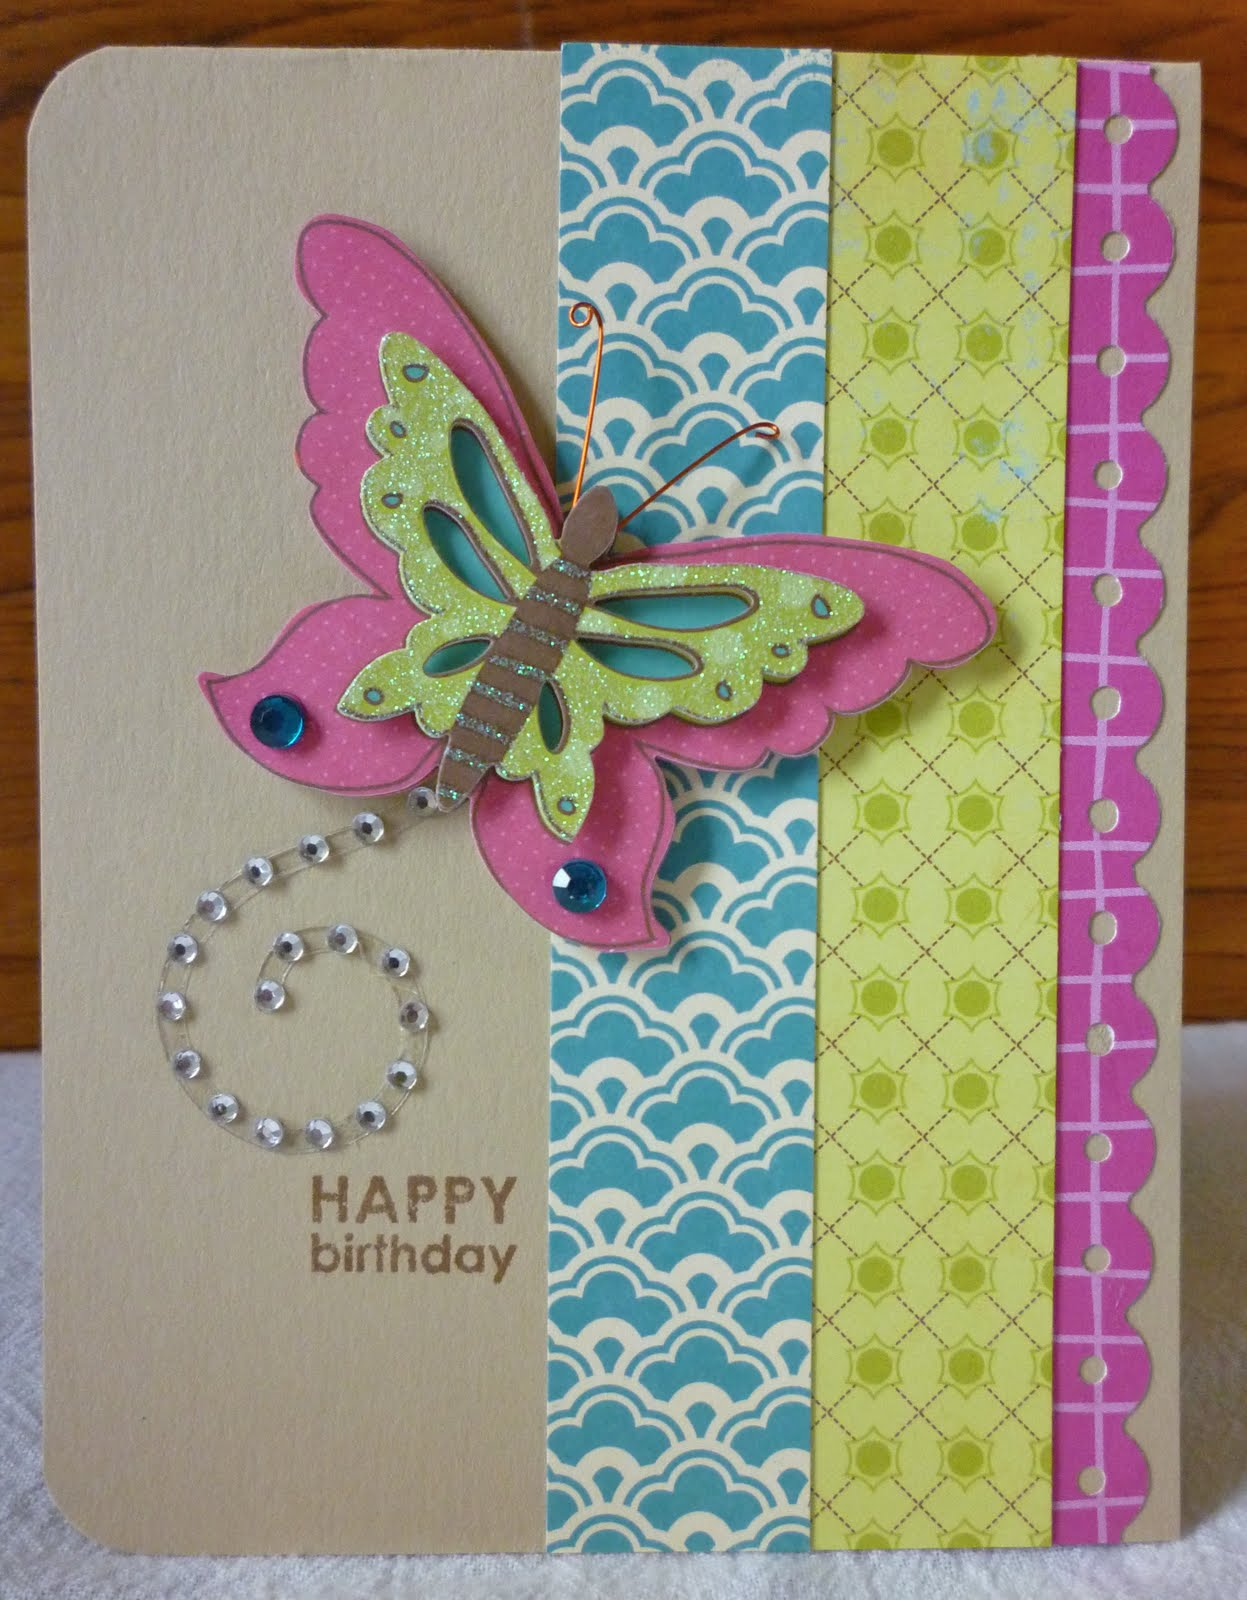 Bits baubles bliss a quick cute birthday card bookmarktalkfo Choice Image